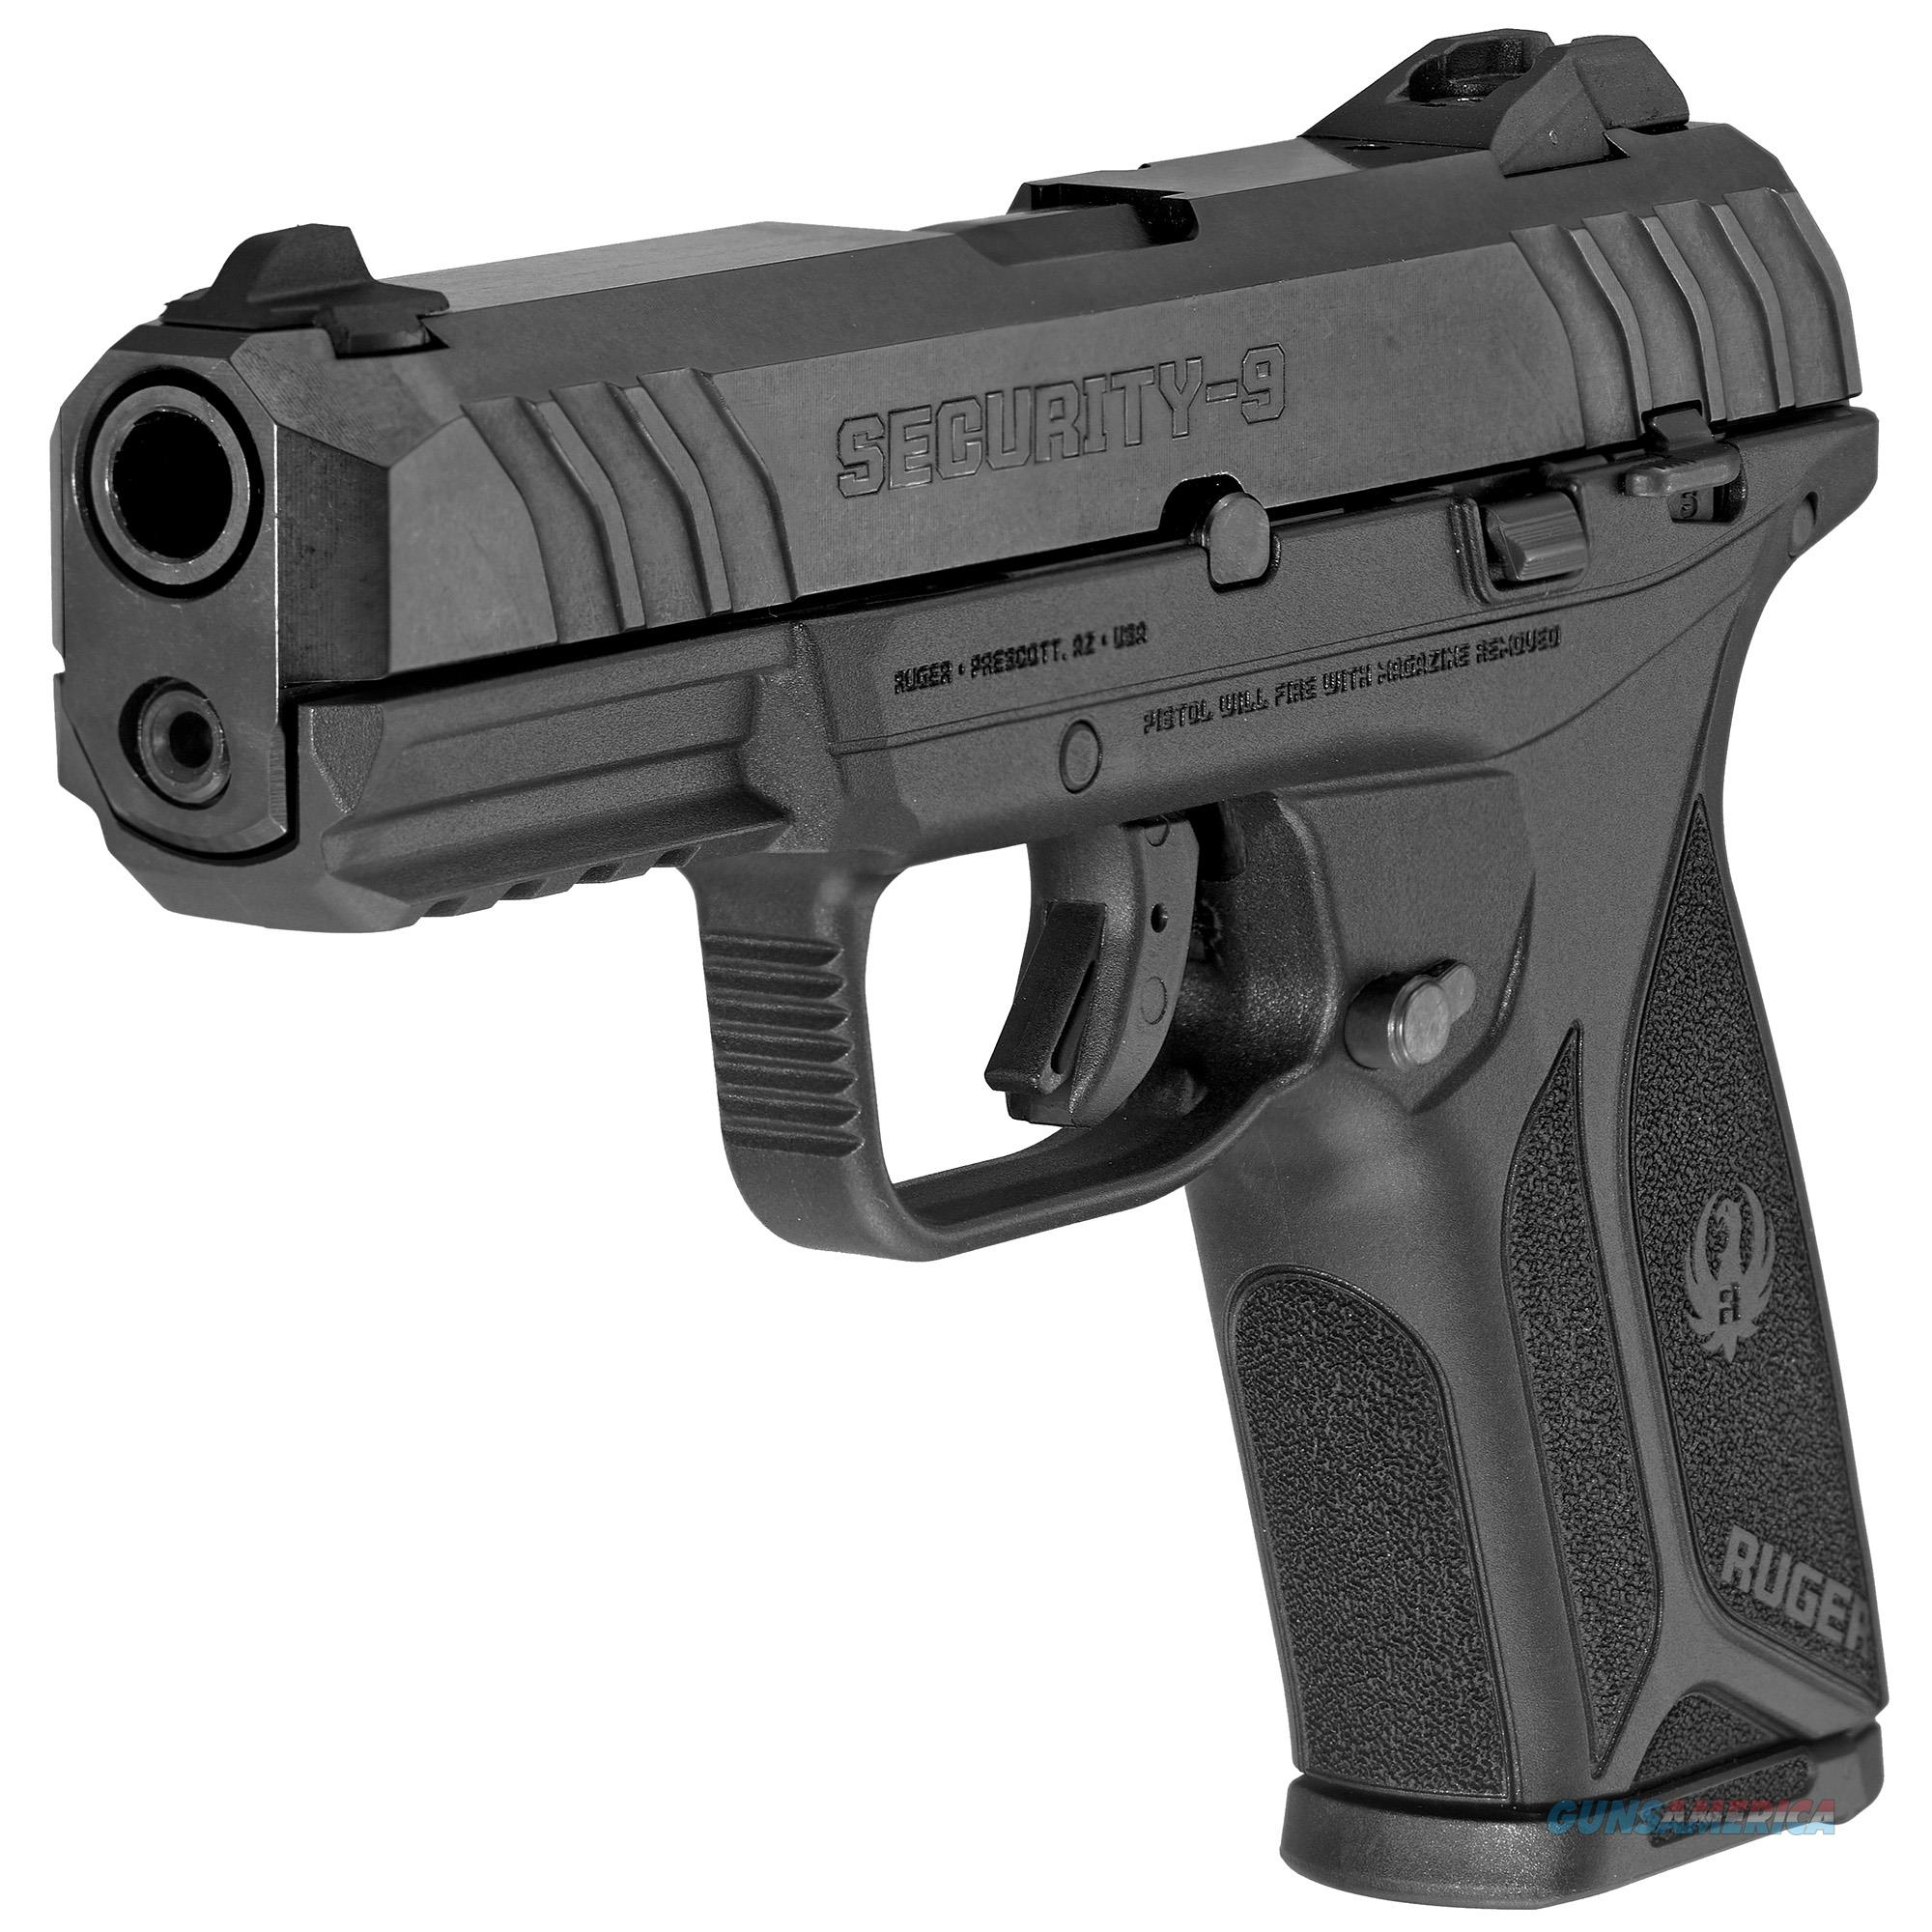 Ruger Security-9 9mm w/2 Mags!  Guns > Pistols > Ruger Semi-Auto Pistols > Security 9